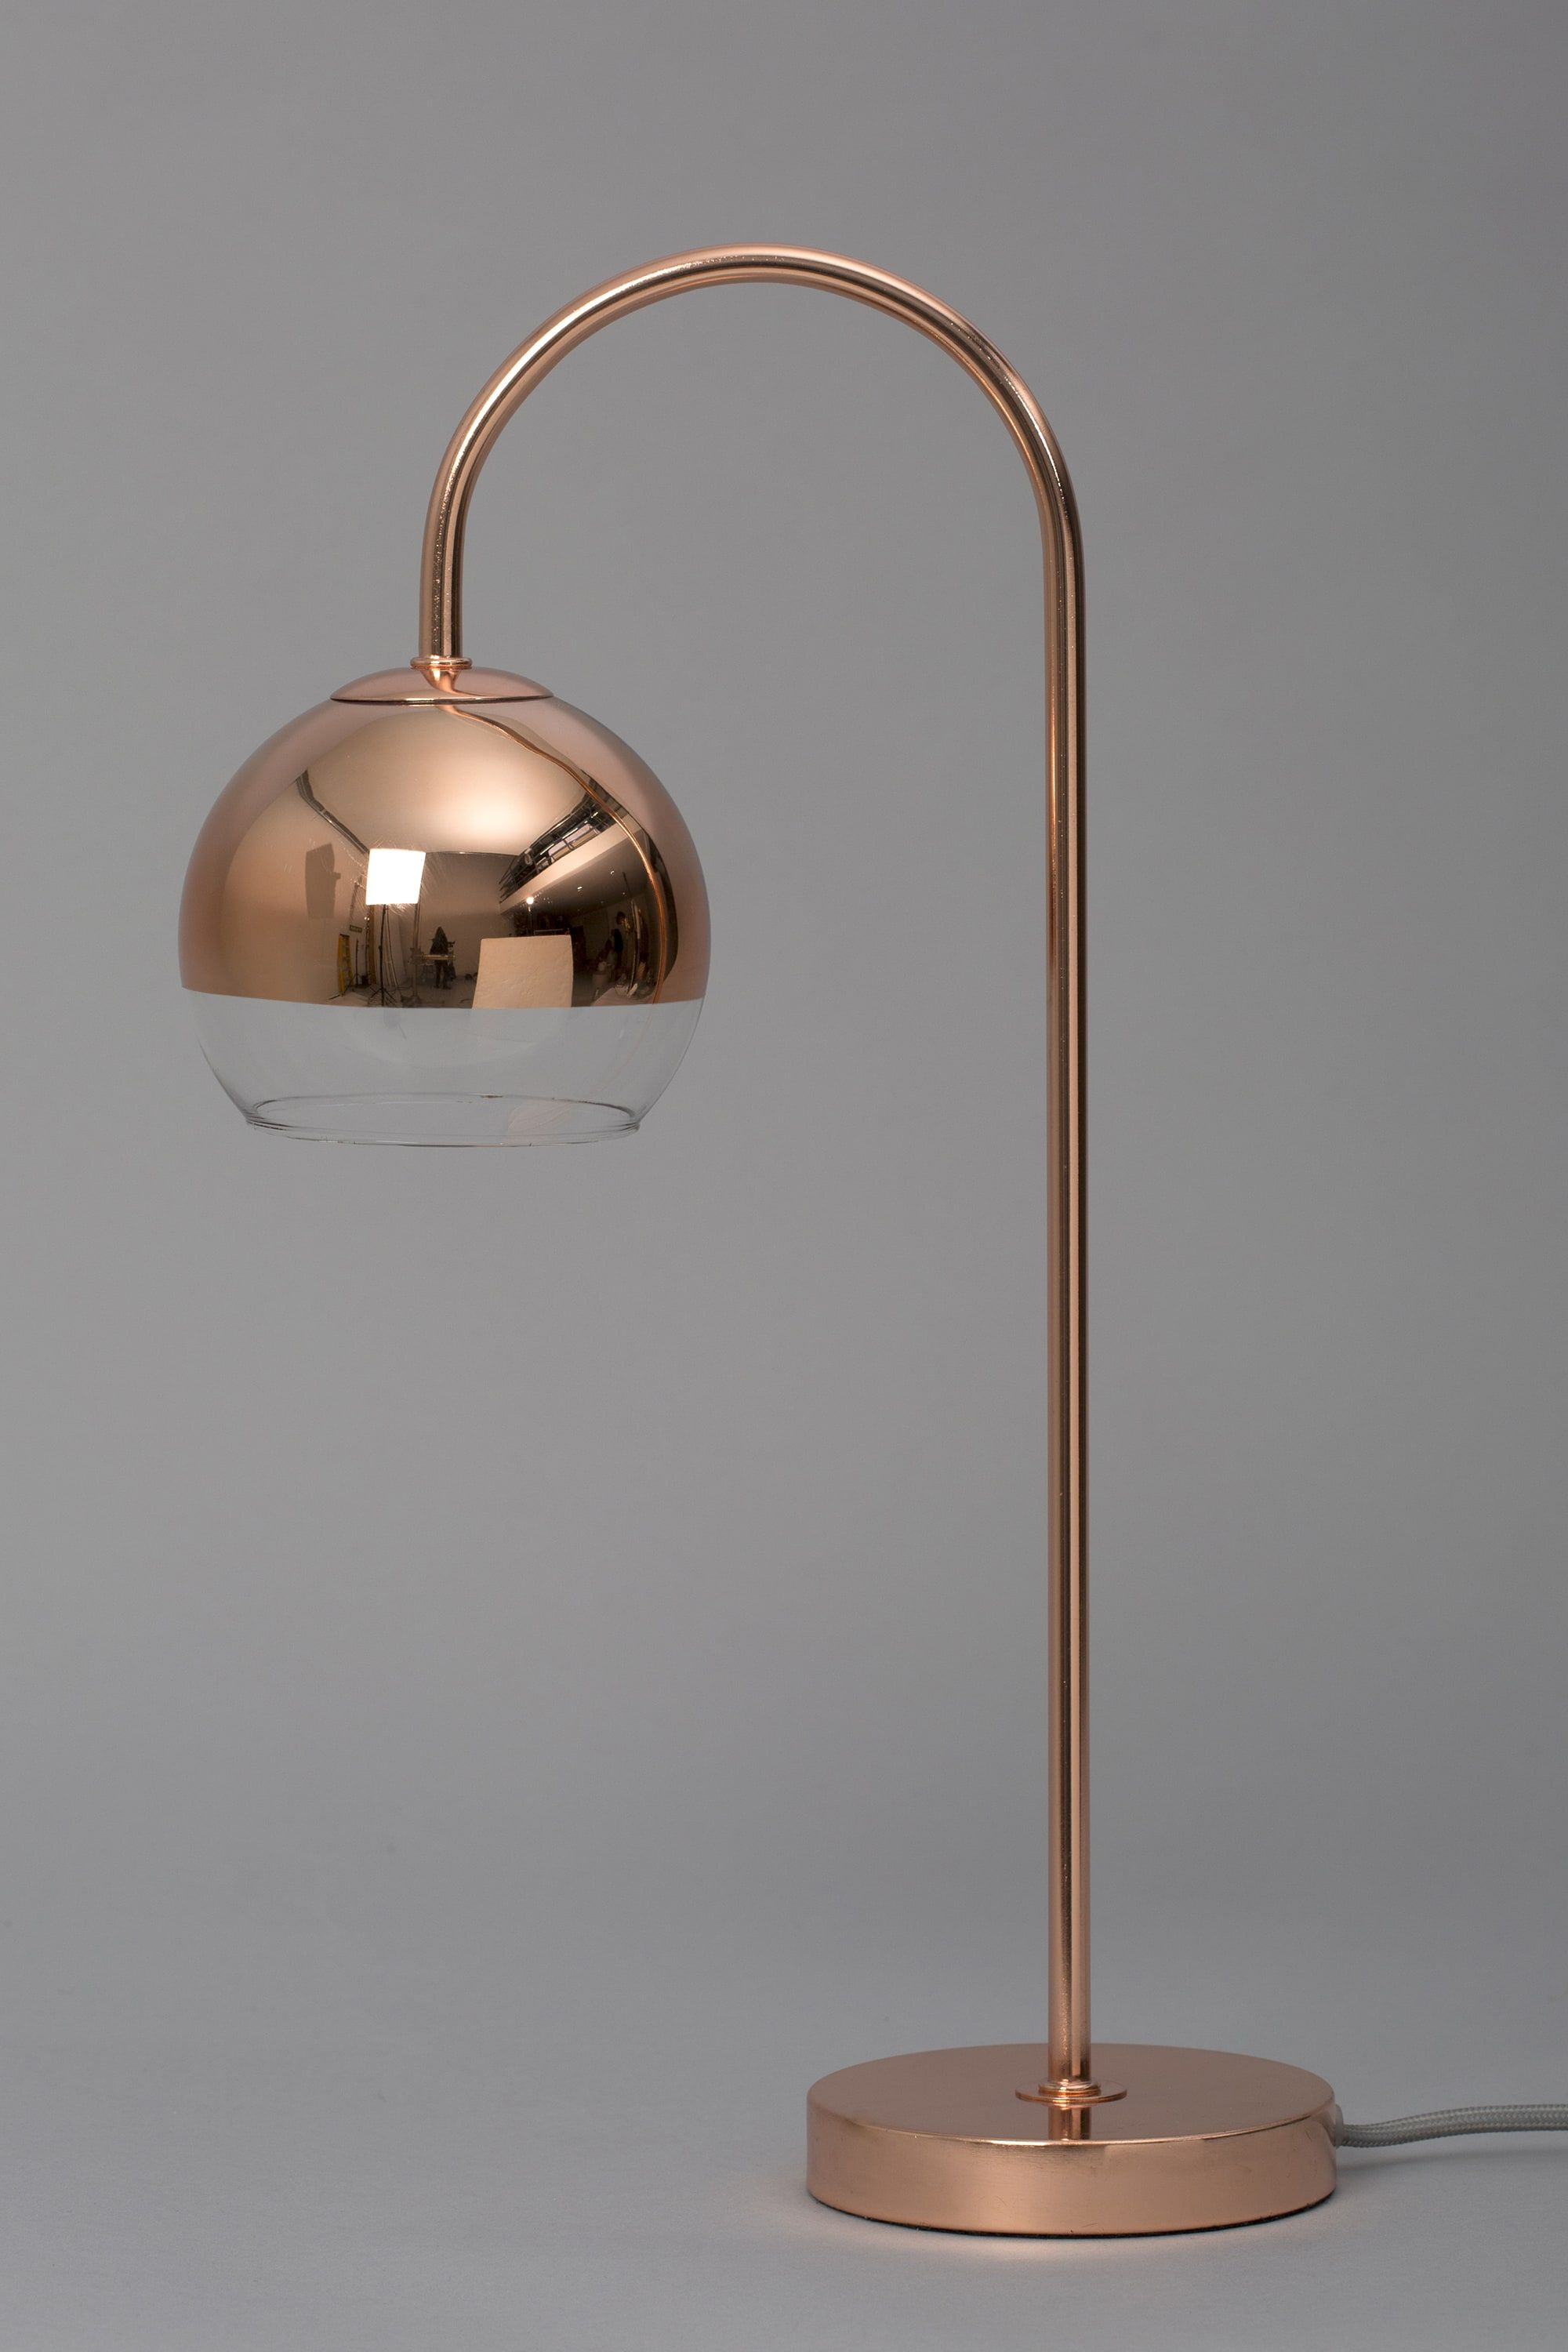 Dunia Table Lamp Bhs Lamp Large Table Lamps Table Lamp